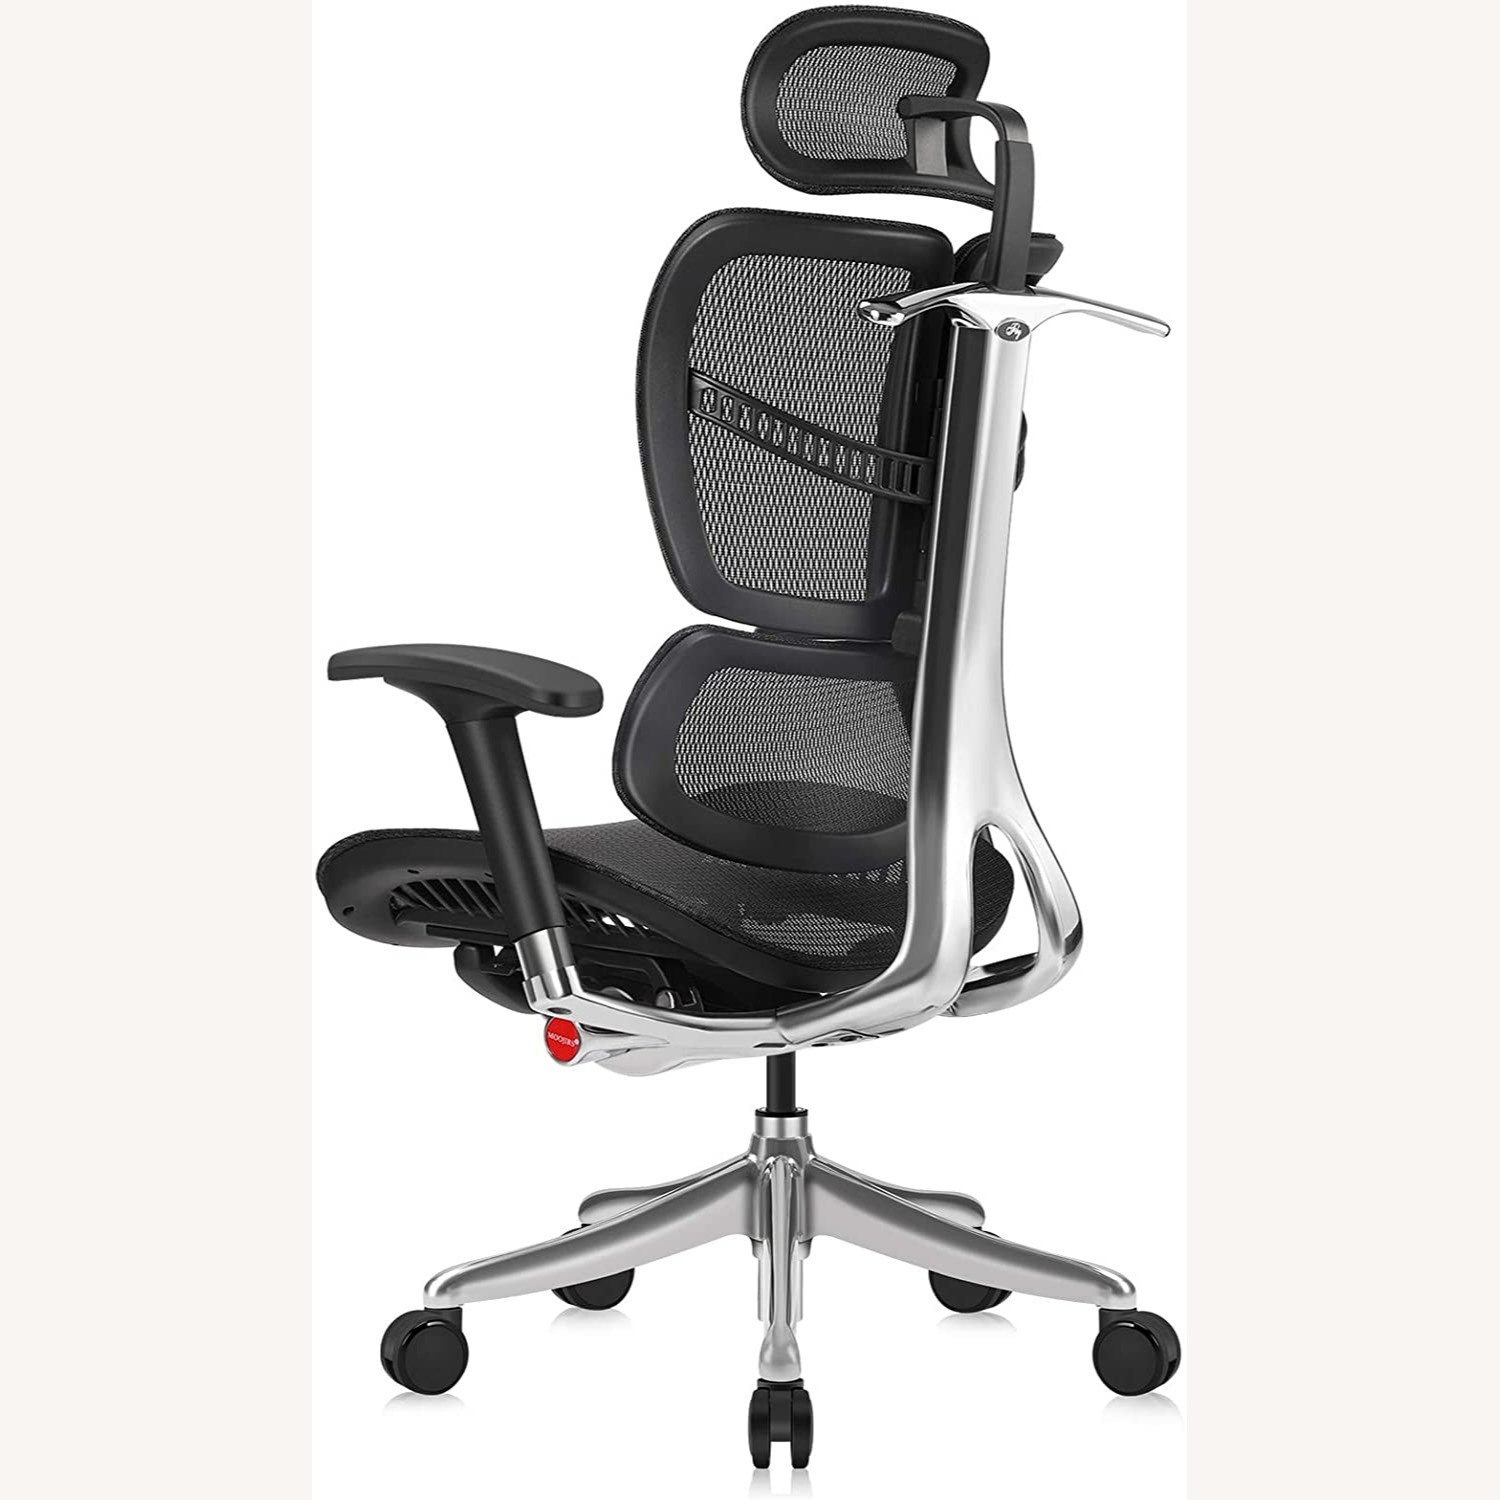 Ergonomic Office Chair with Headrest - image-1